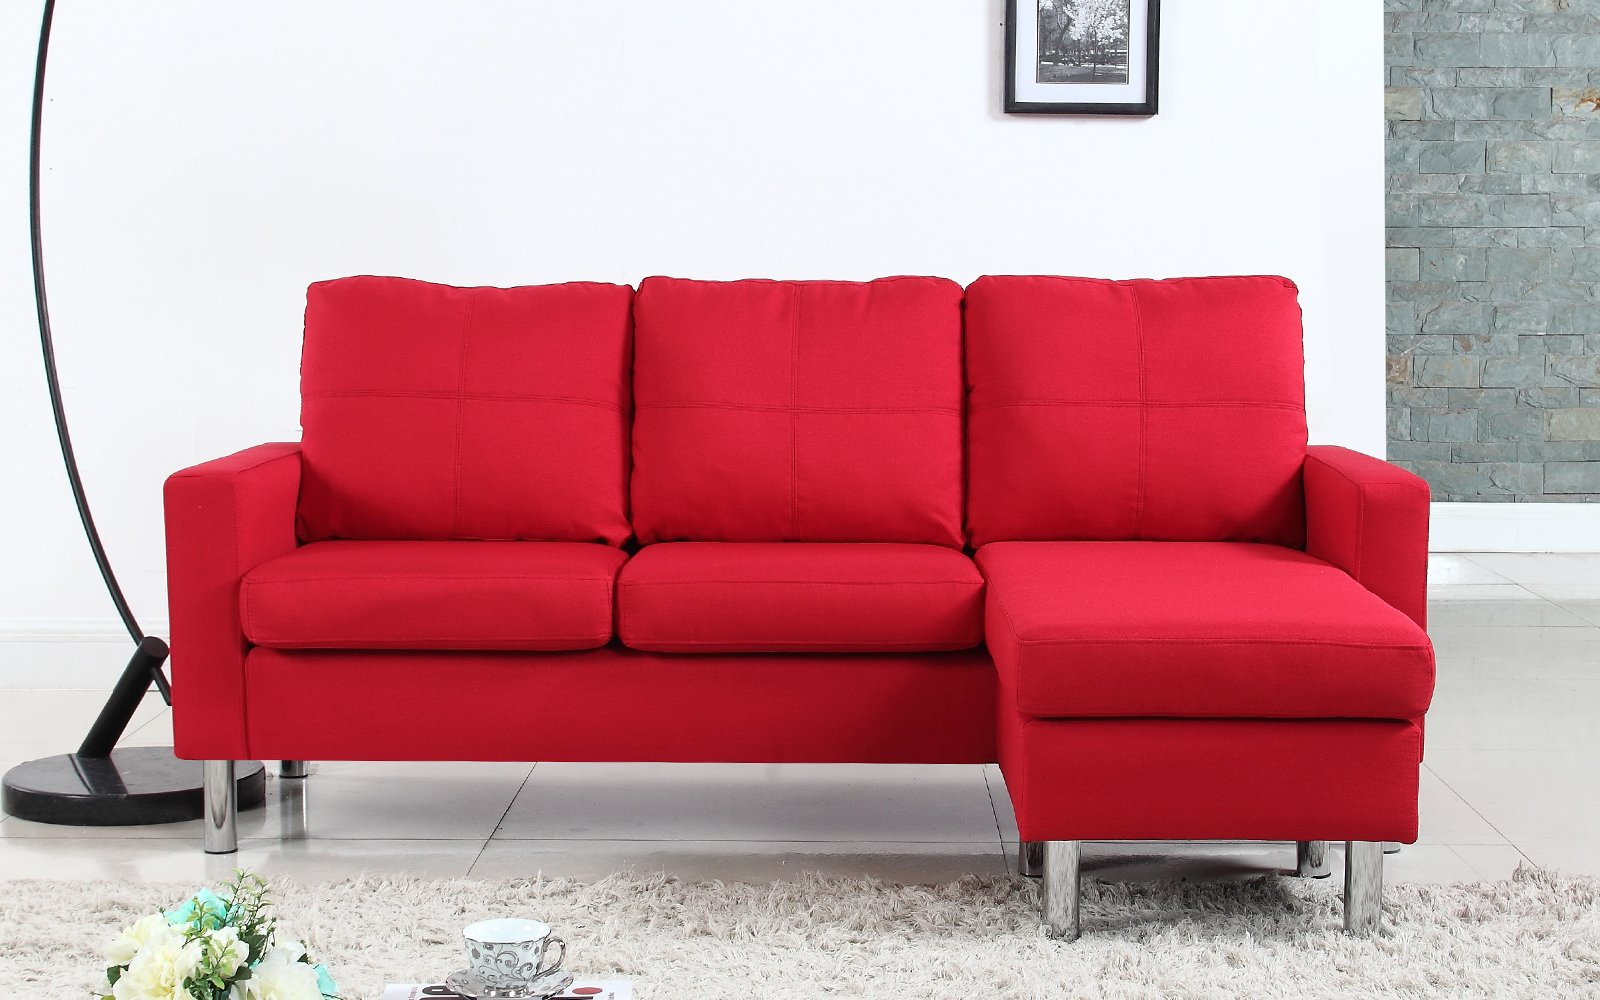 Details about Modern Small Space Reversible Linen Fabric Upholstered  Sectional Sofa, Red